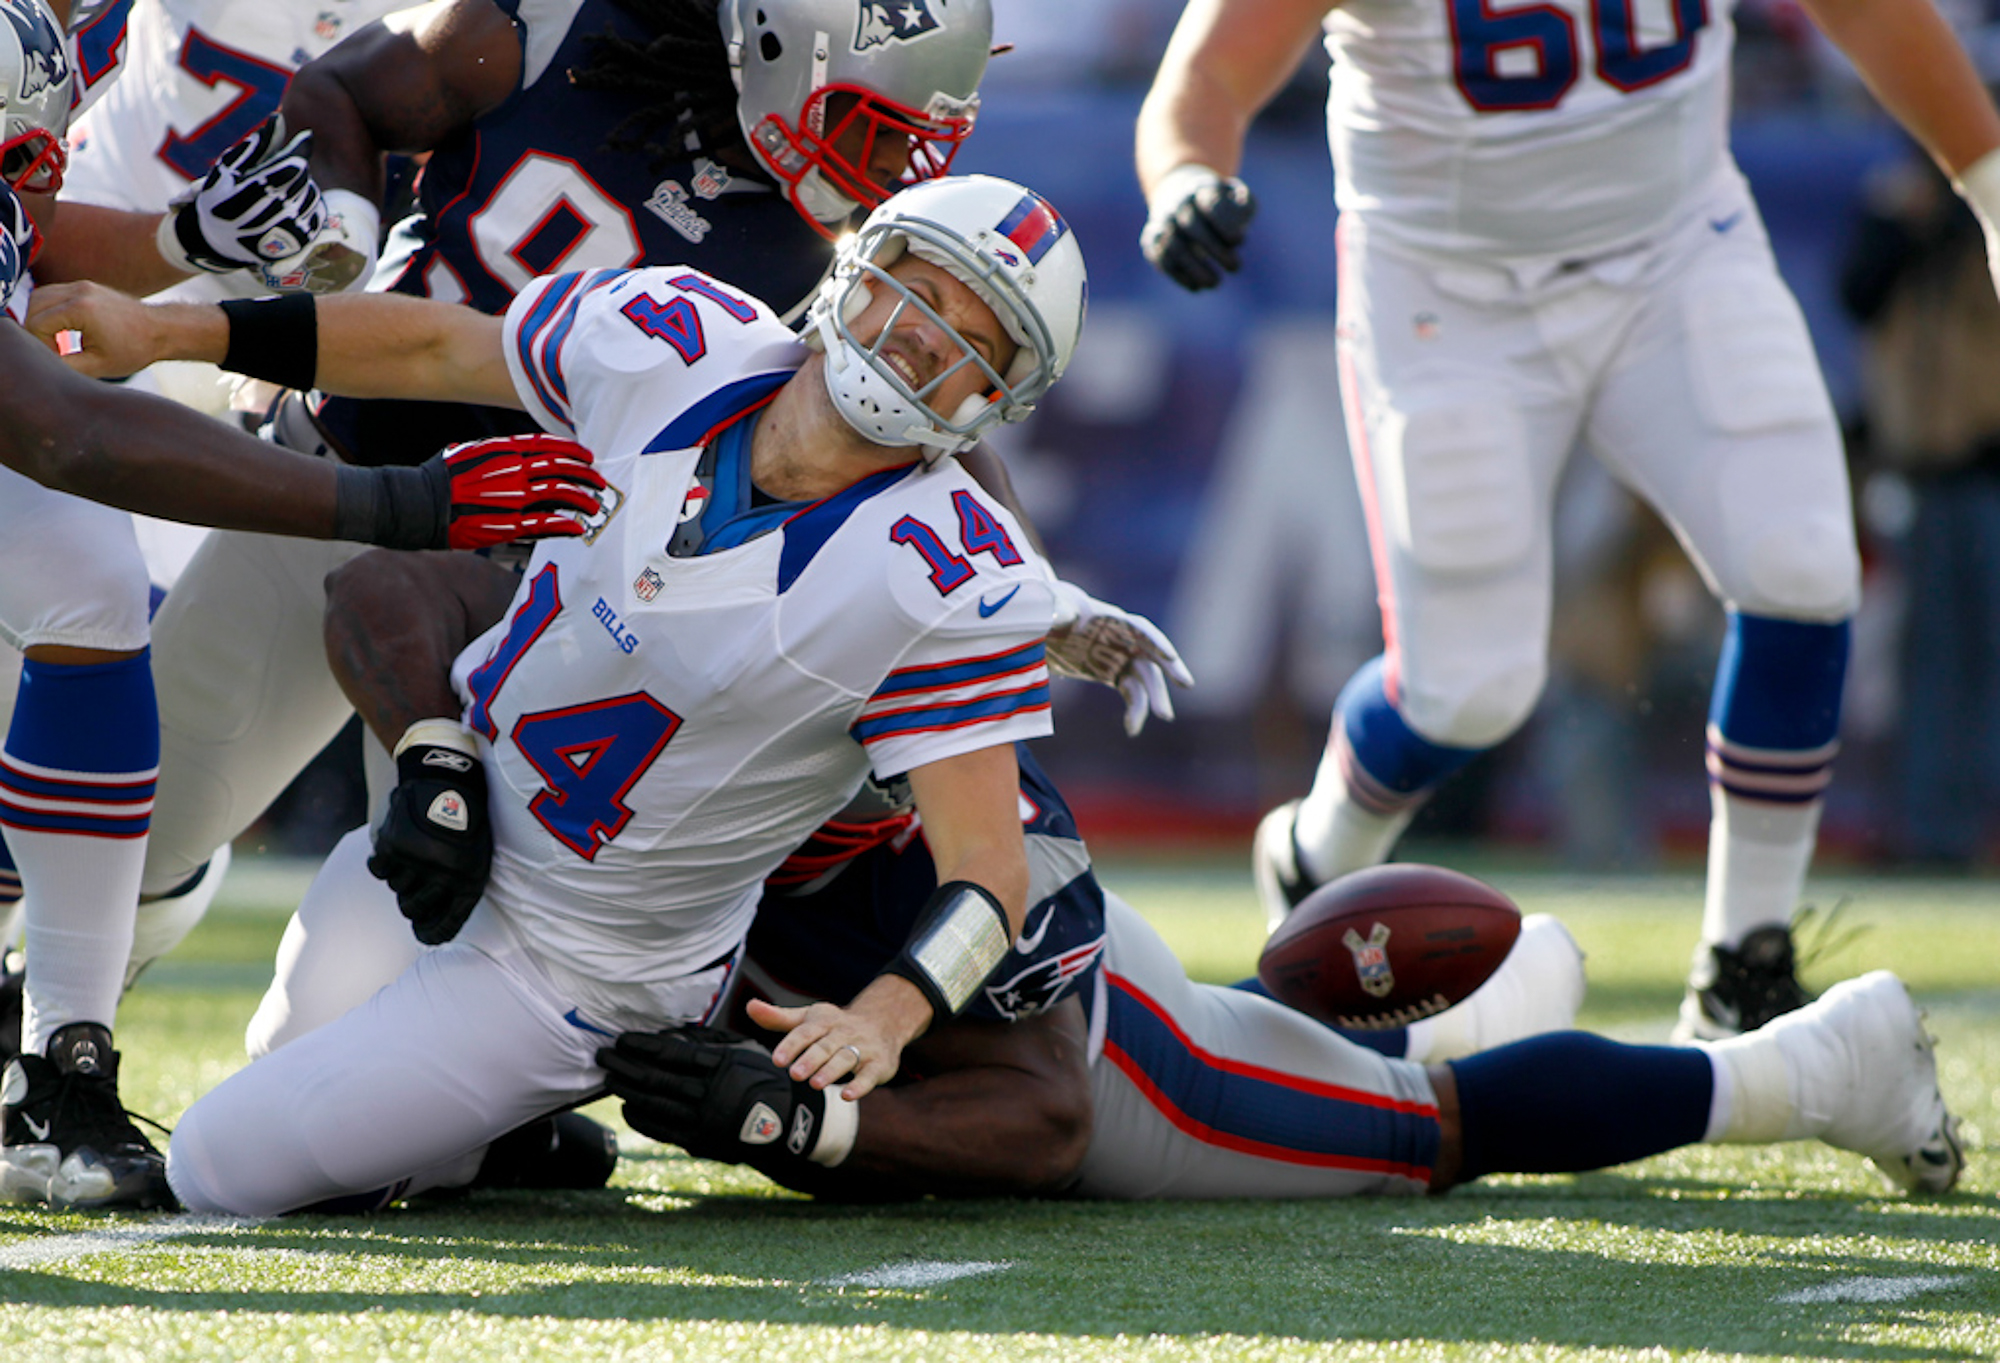 Buffalo Bills quarterback Ryan Fitzpatrick (14) fumbles the ball as he is sacked by New England Patriots defensive lineman Vince Wilfork in the first quarter at Gillette Stadium in Foxboro, Massachusetts on November 11, 2012.